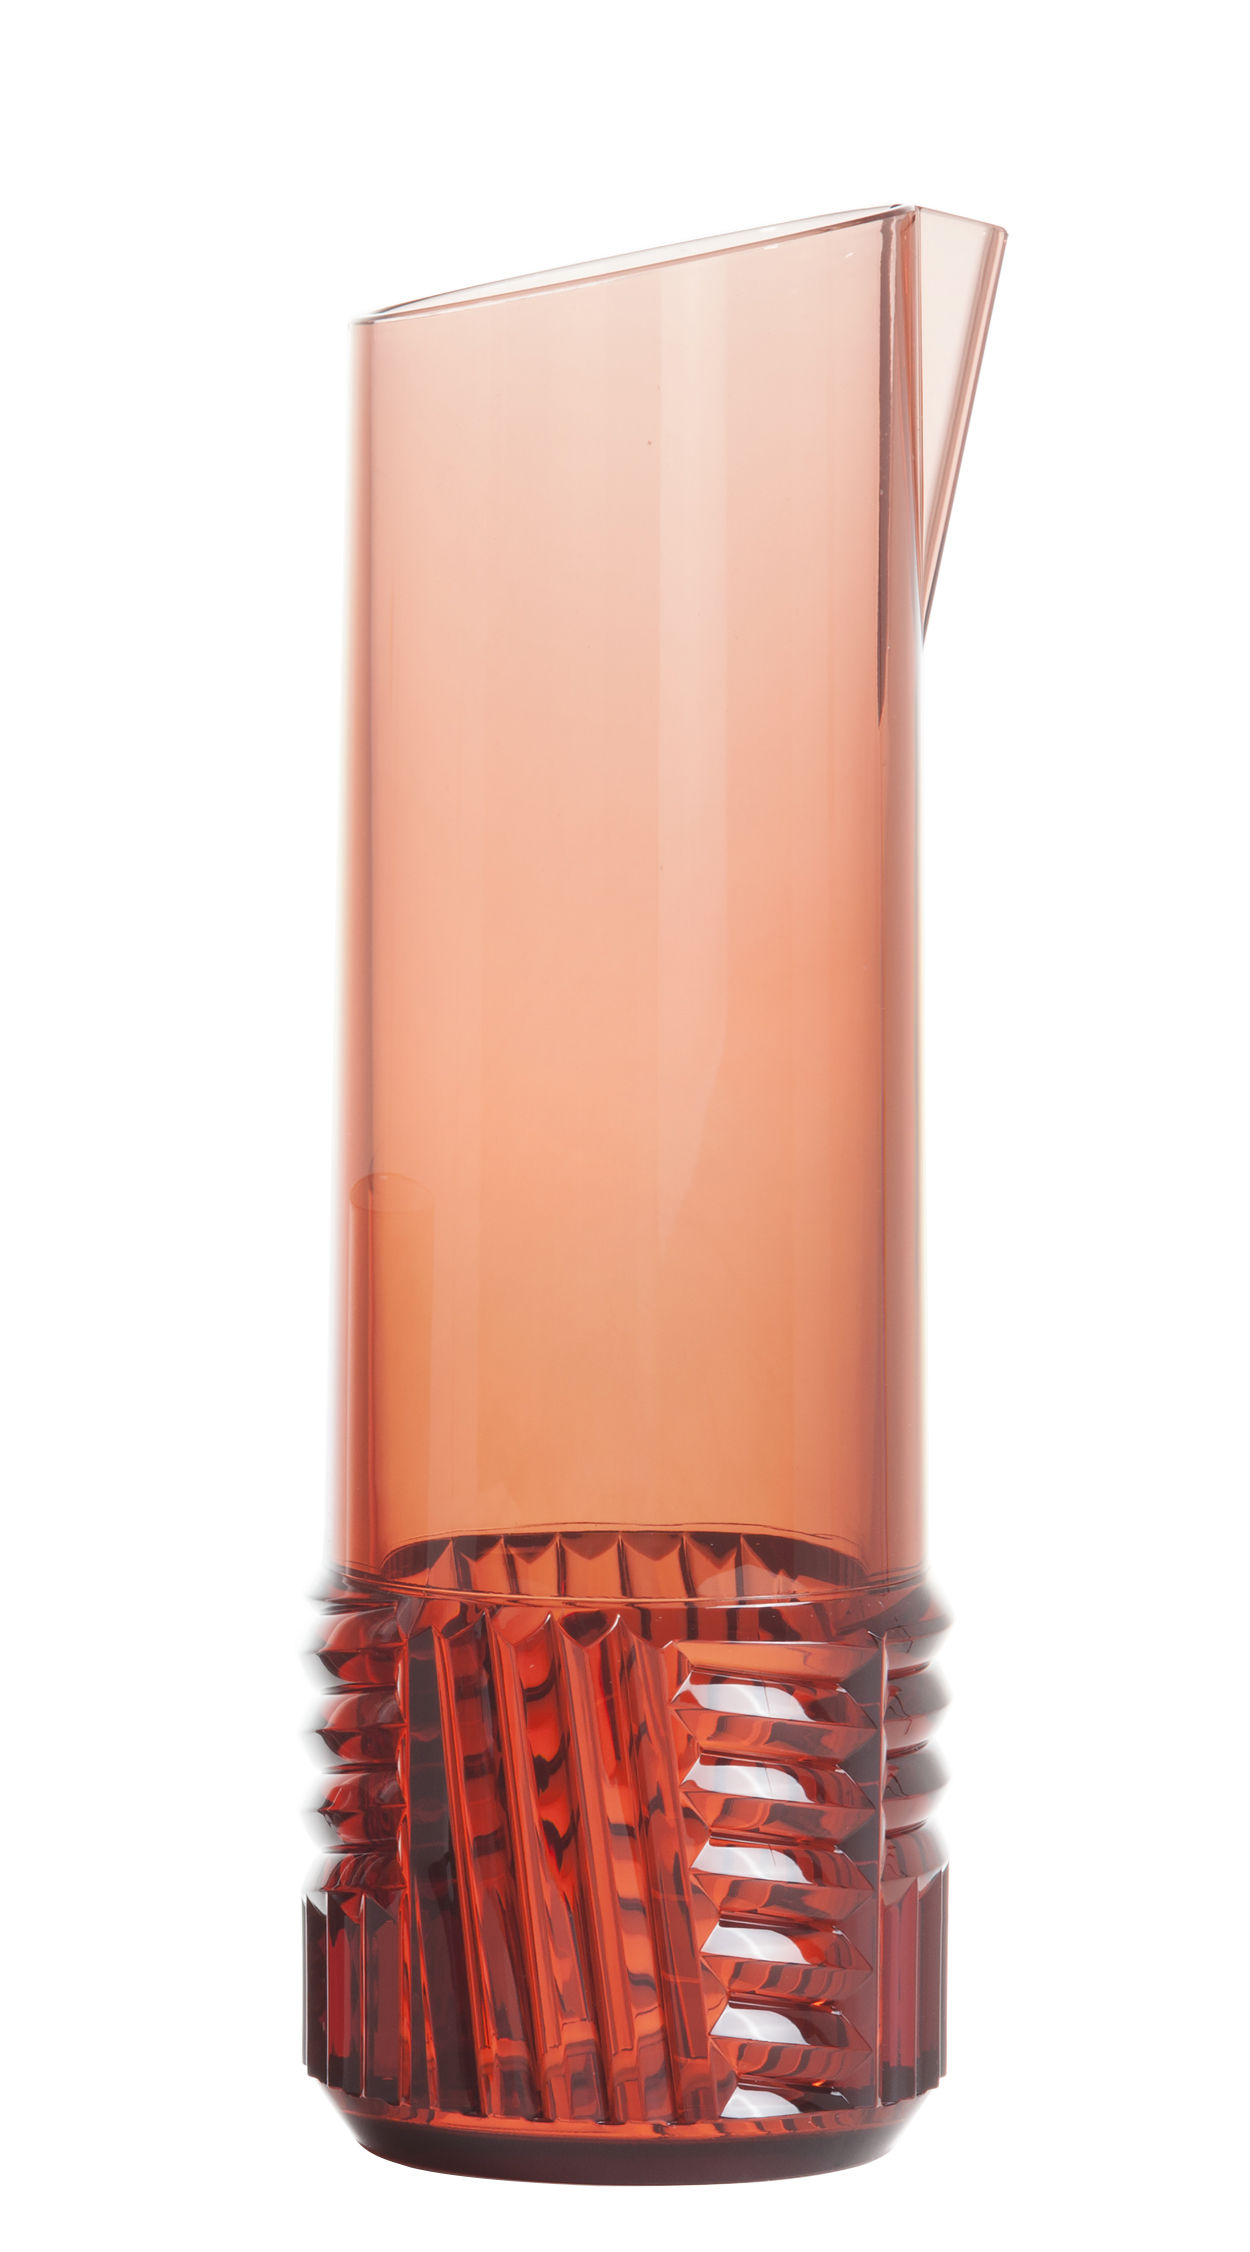 Tableware - Water Carafes & Wine Decanters - Trama Carafe - / 1 L by Kartell - Pink - Technopolymer